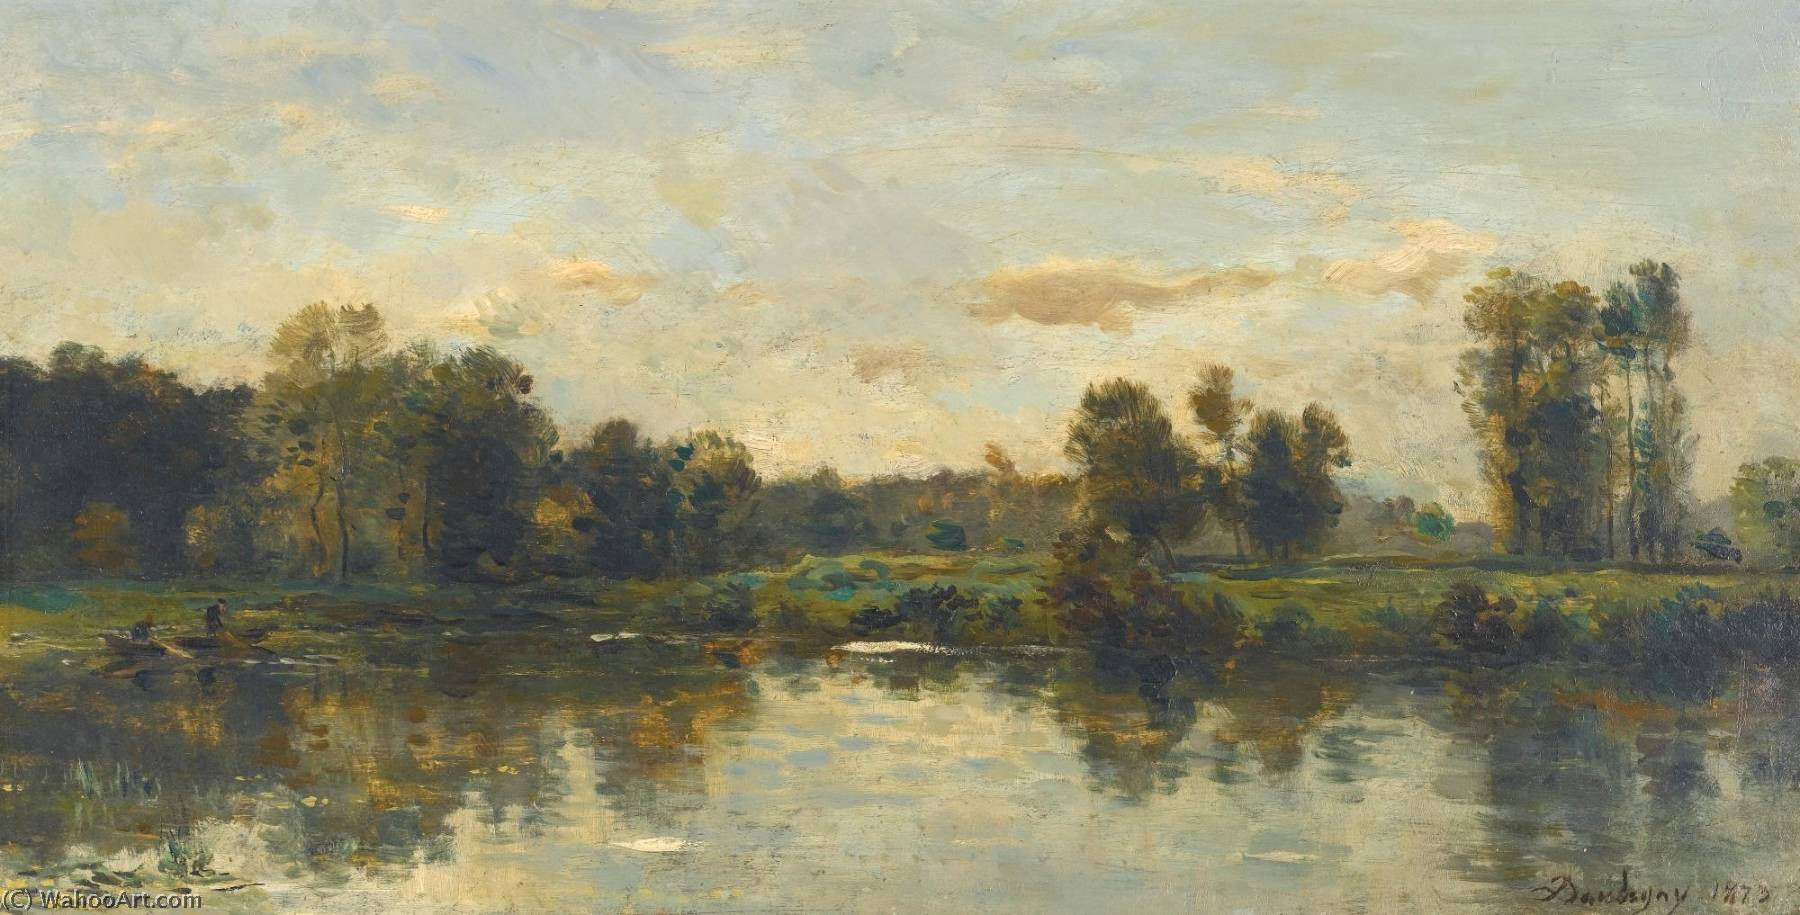 Bords du fleuve by Charles François Daubigny (1817-1878, France) | Oil Painting | WahooArt.com